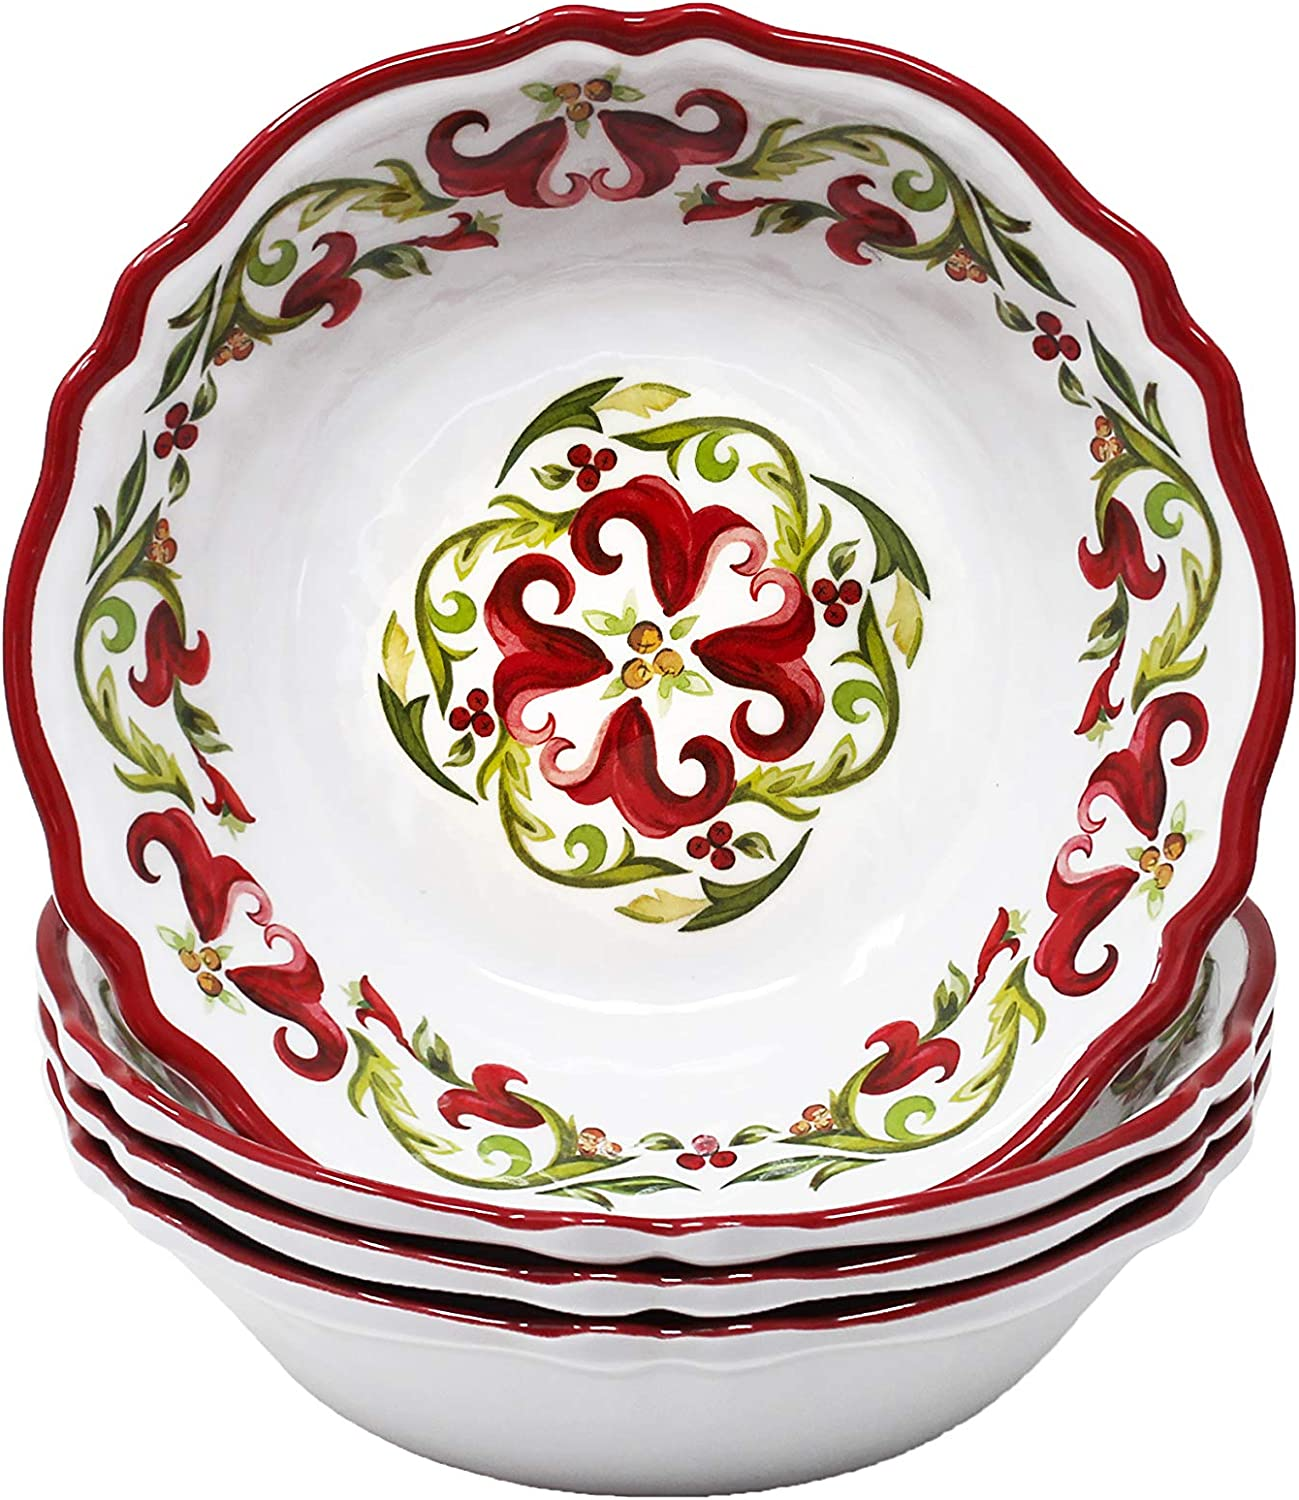 Le Cadeaux Vischio Holiday Collection Set Recommendation Bowl Melamine Cereal Outstanding